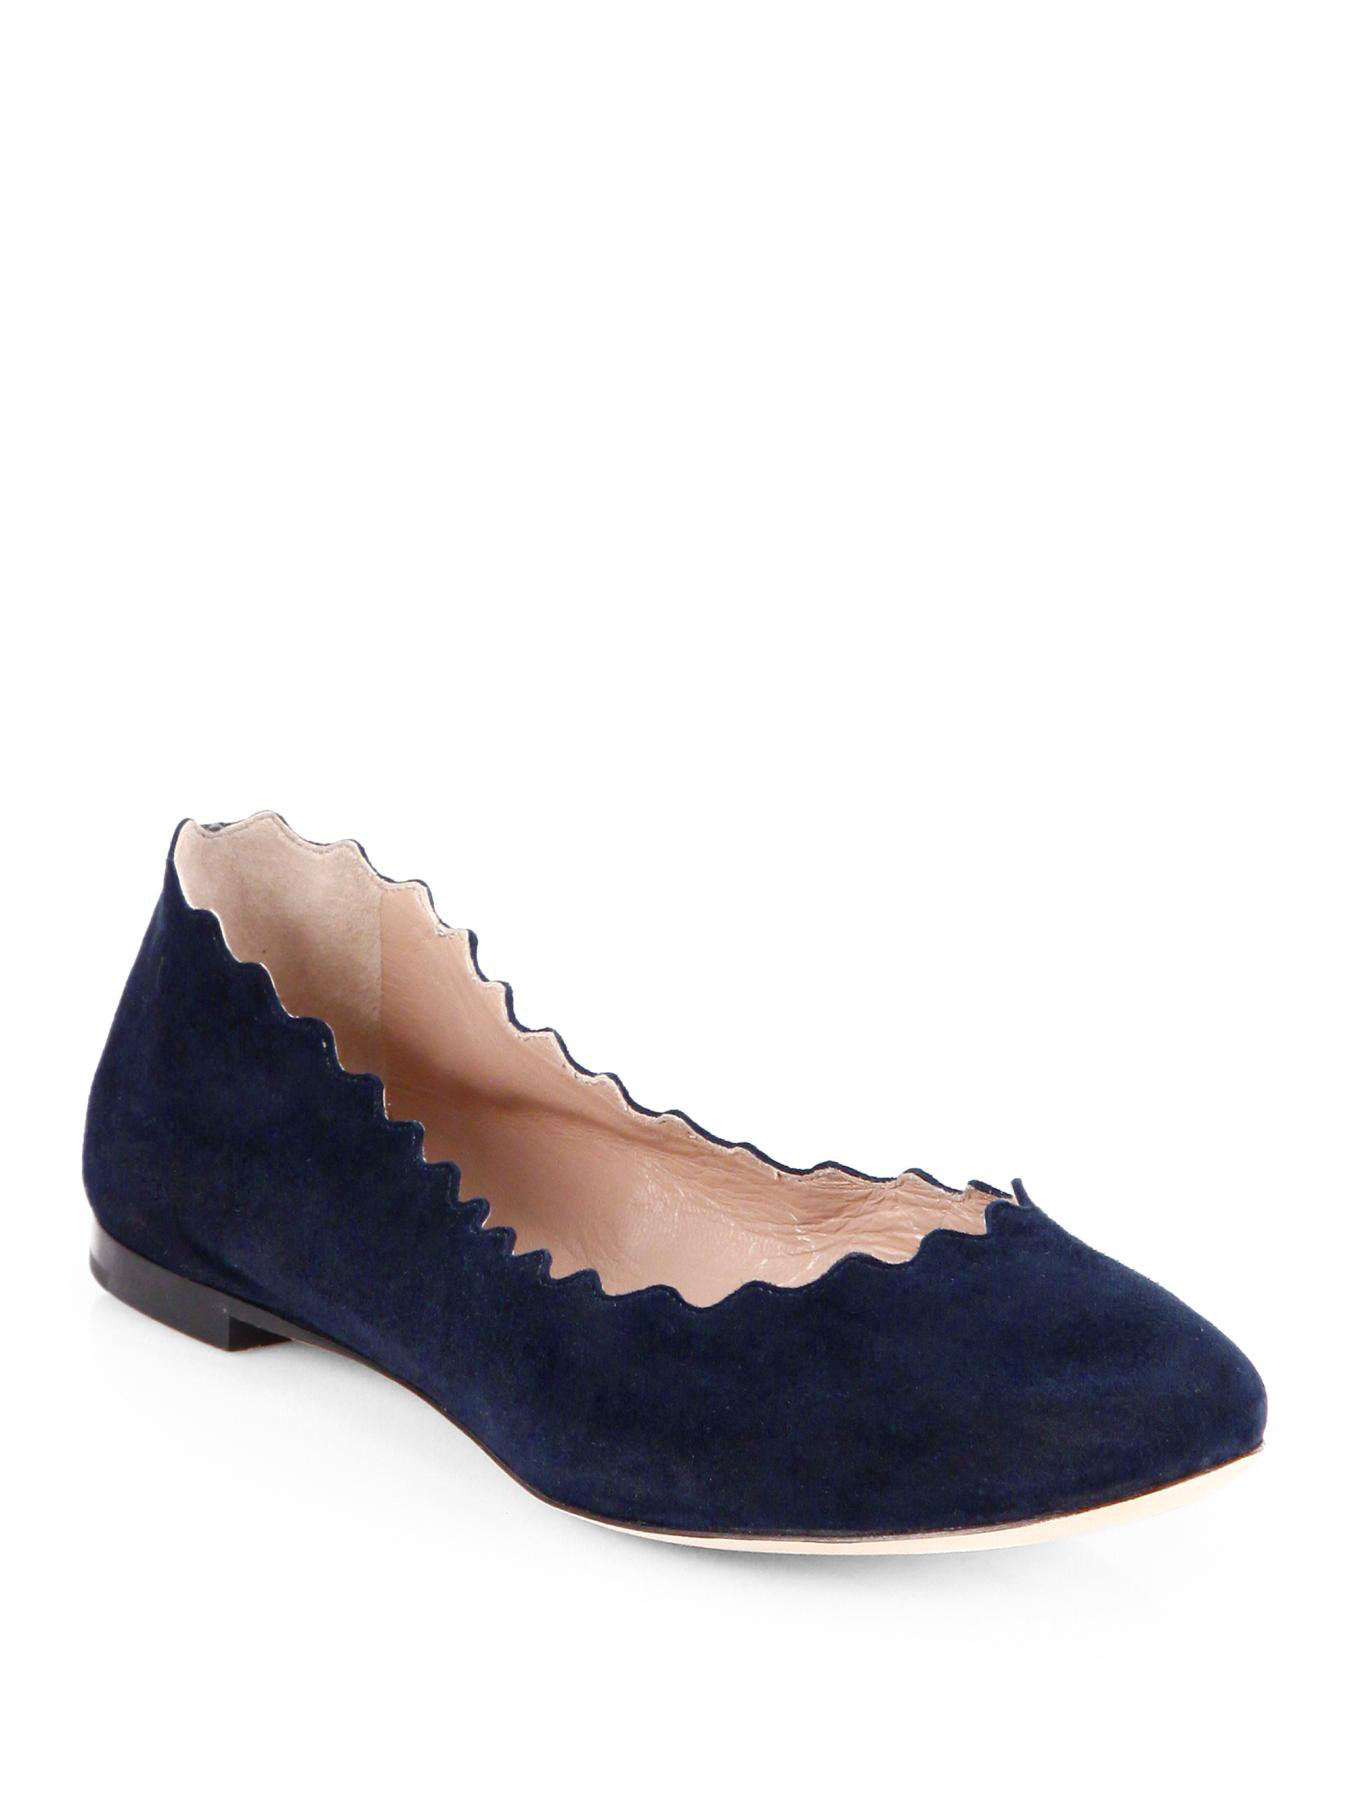 Chlo Scalloped Suede Ballet Flats in Blue BLUE LAGOON